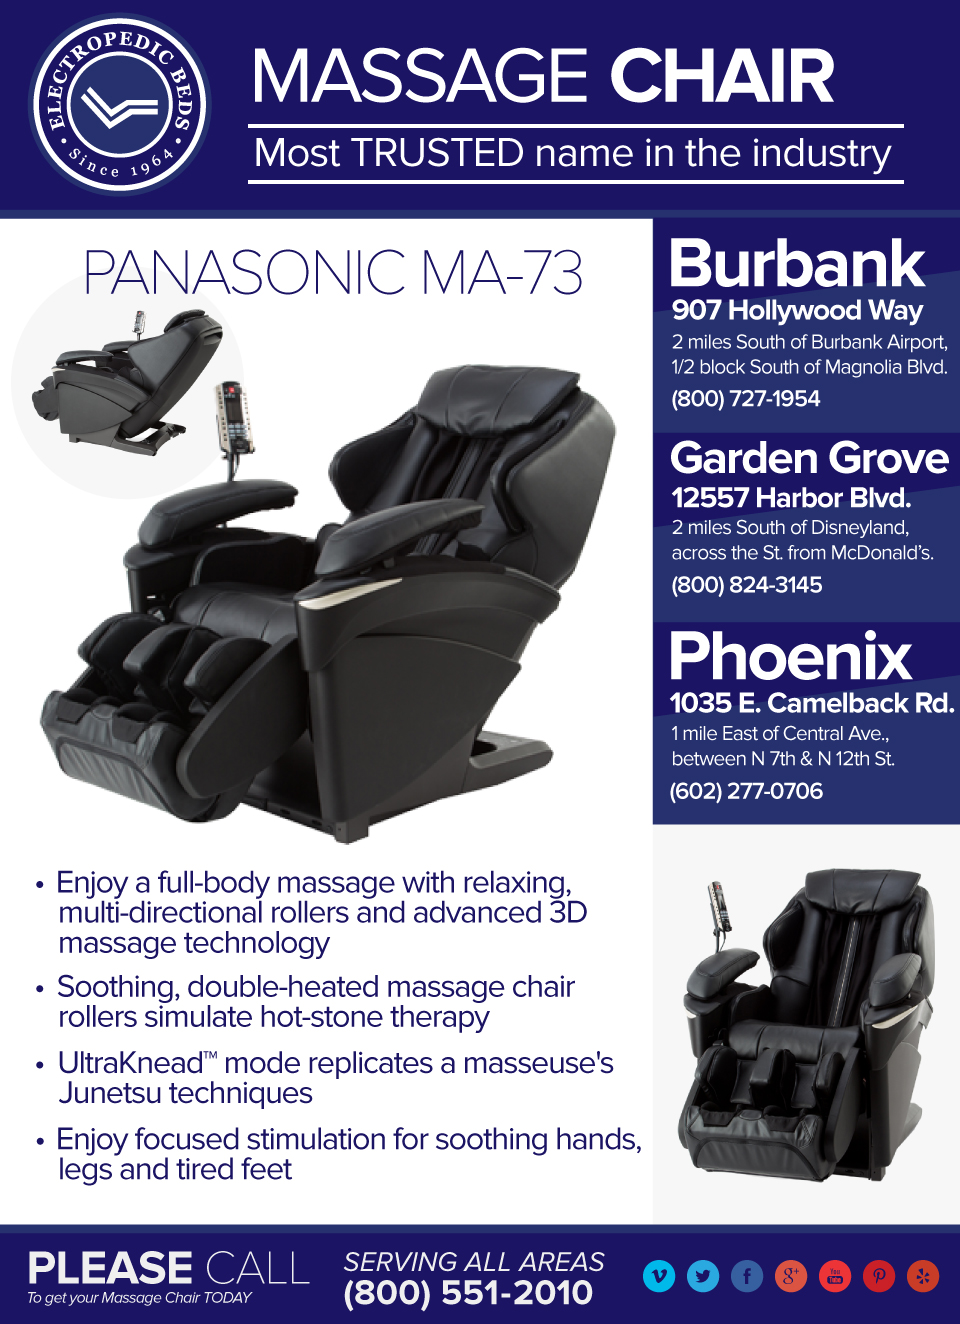 Panasonic MA73 massage chair